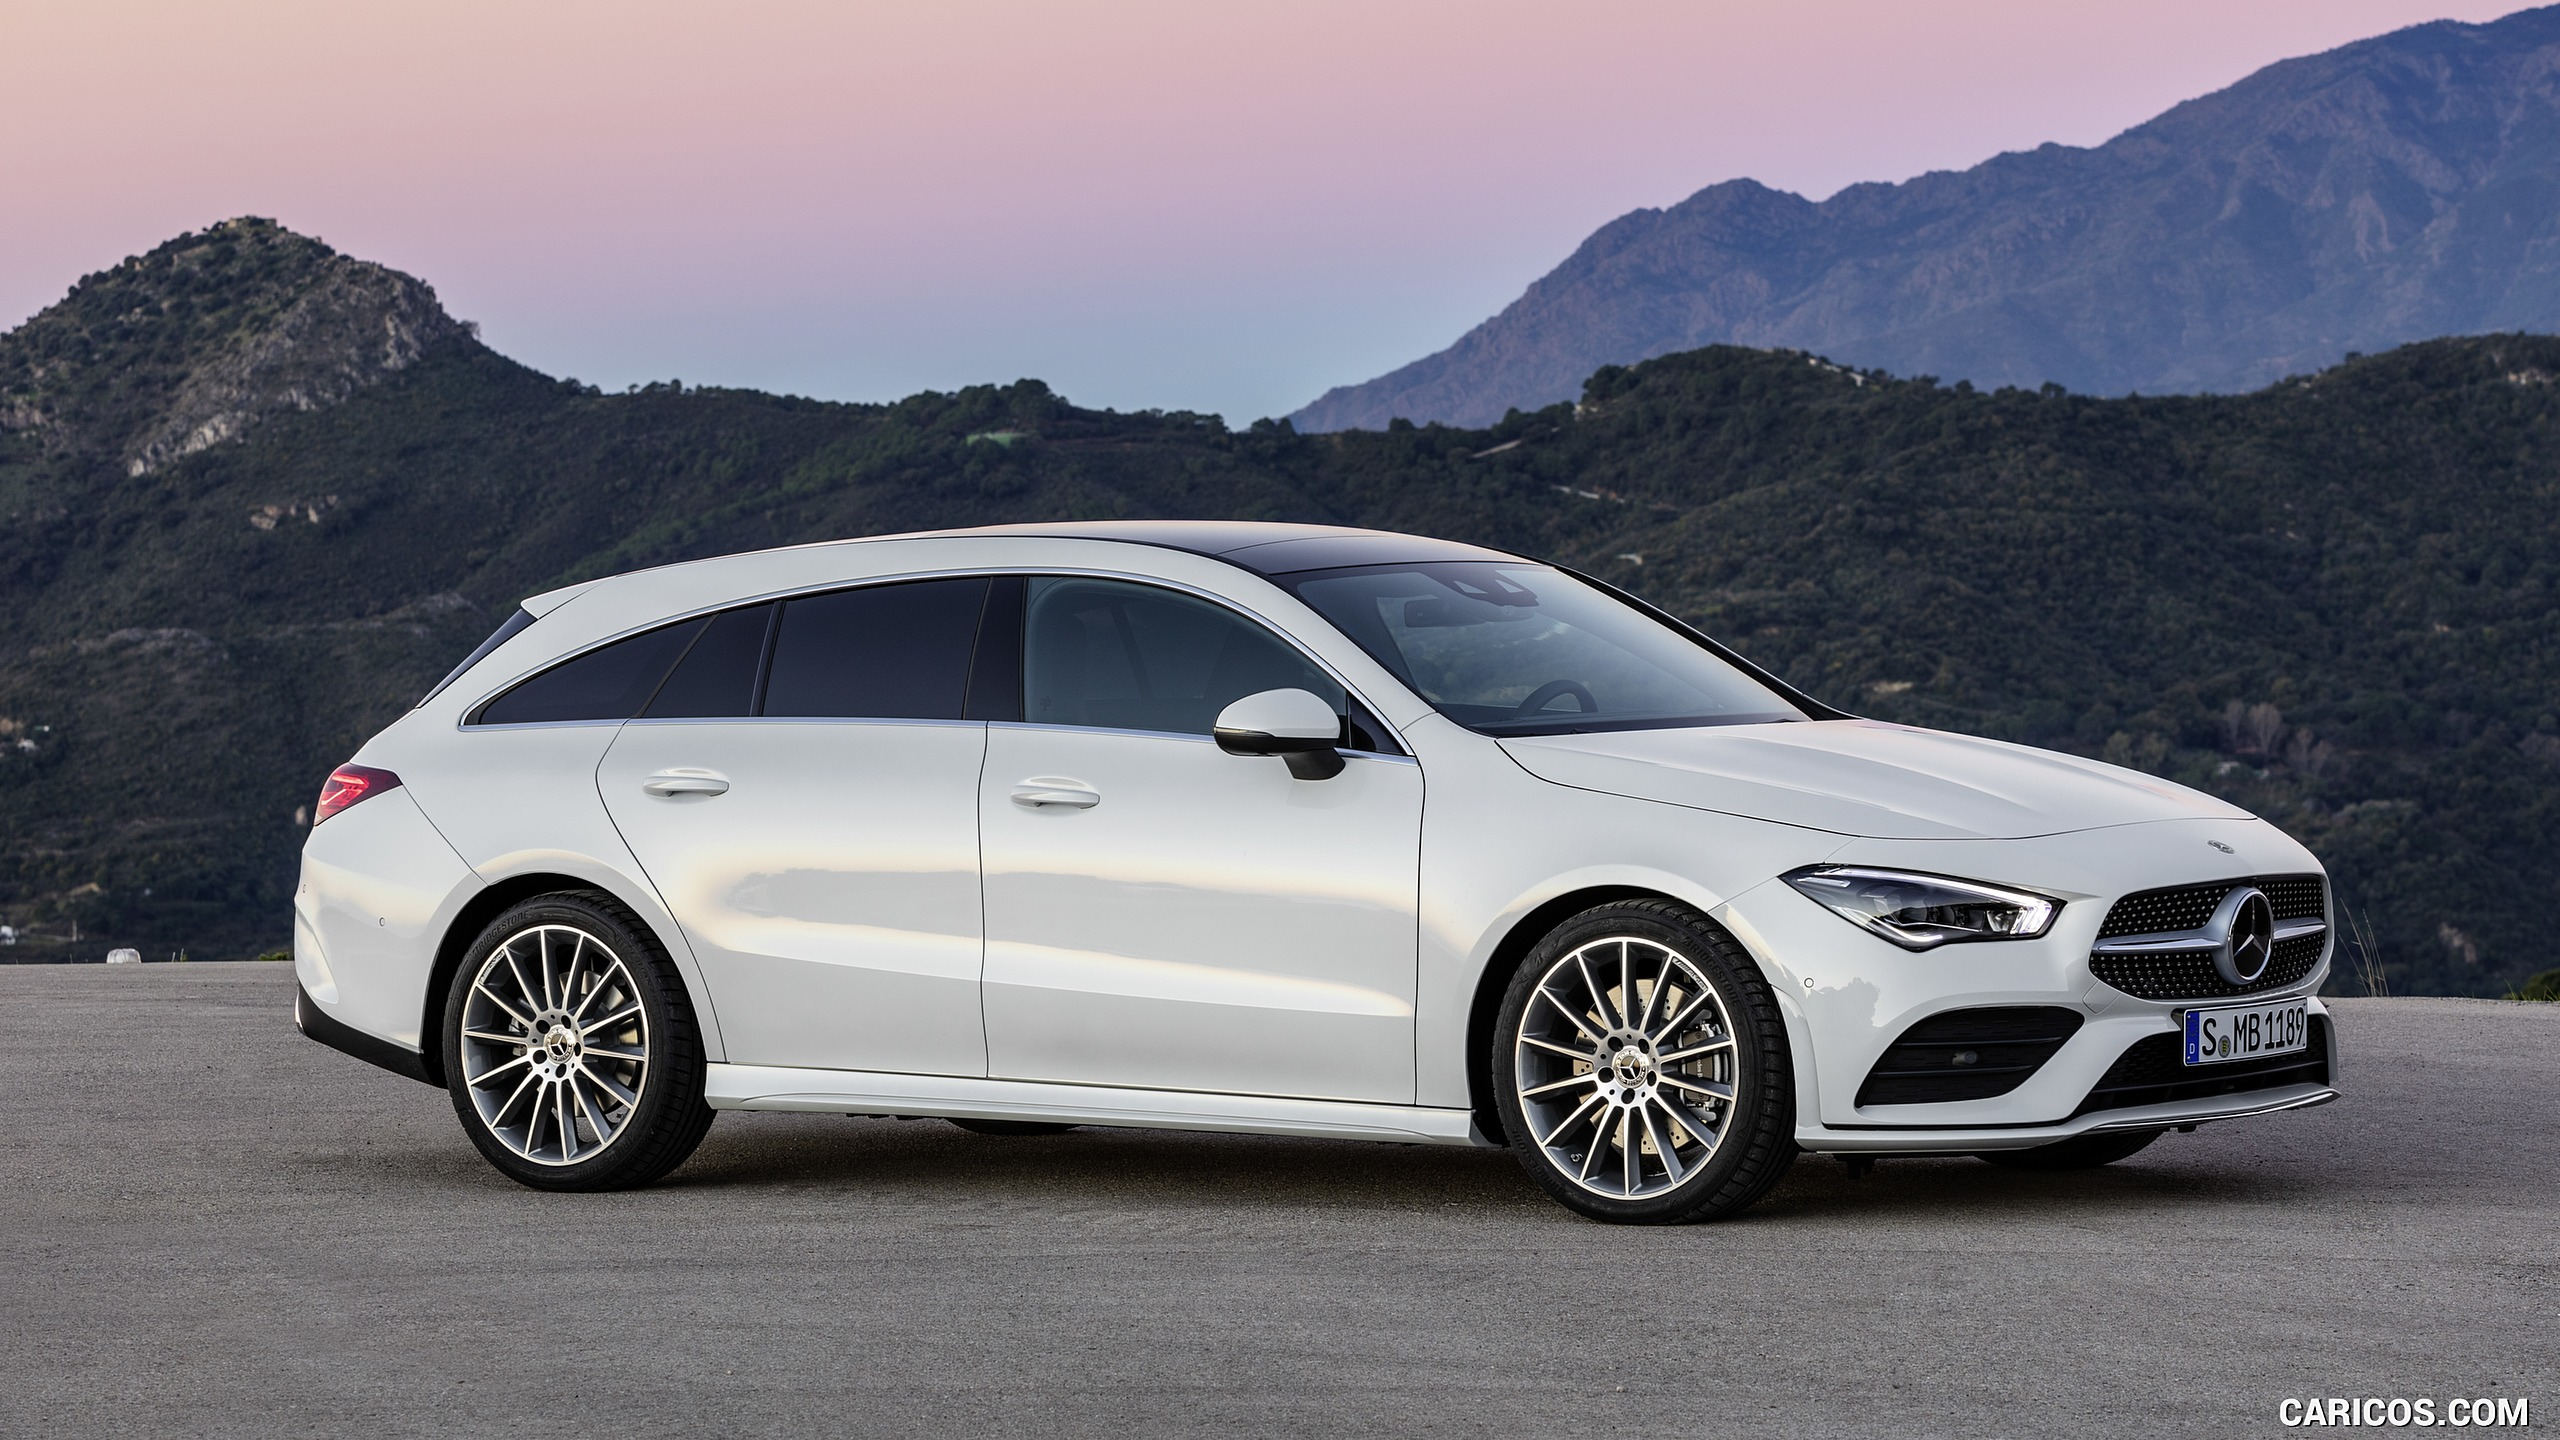 2020 Mercedes Benz CLA Shooting Brake AMG Line Color Digital 2560x1440